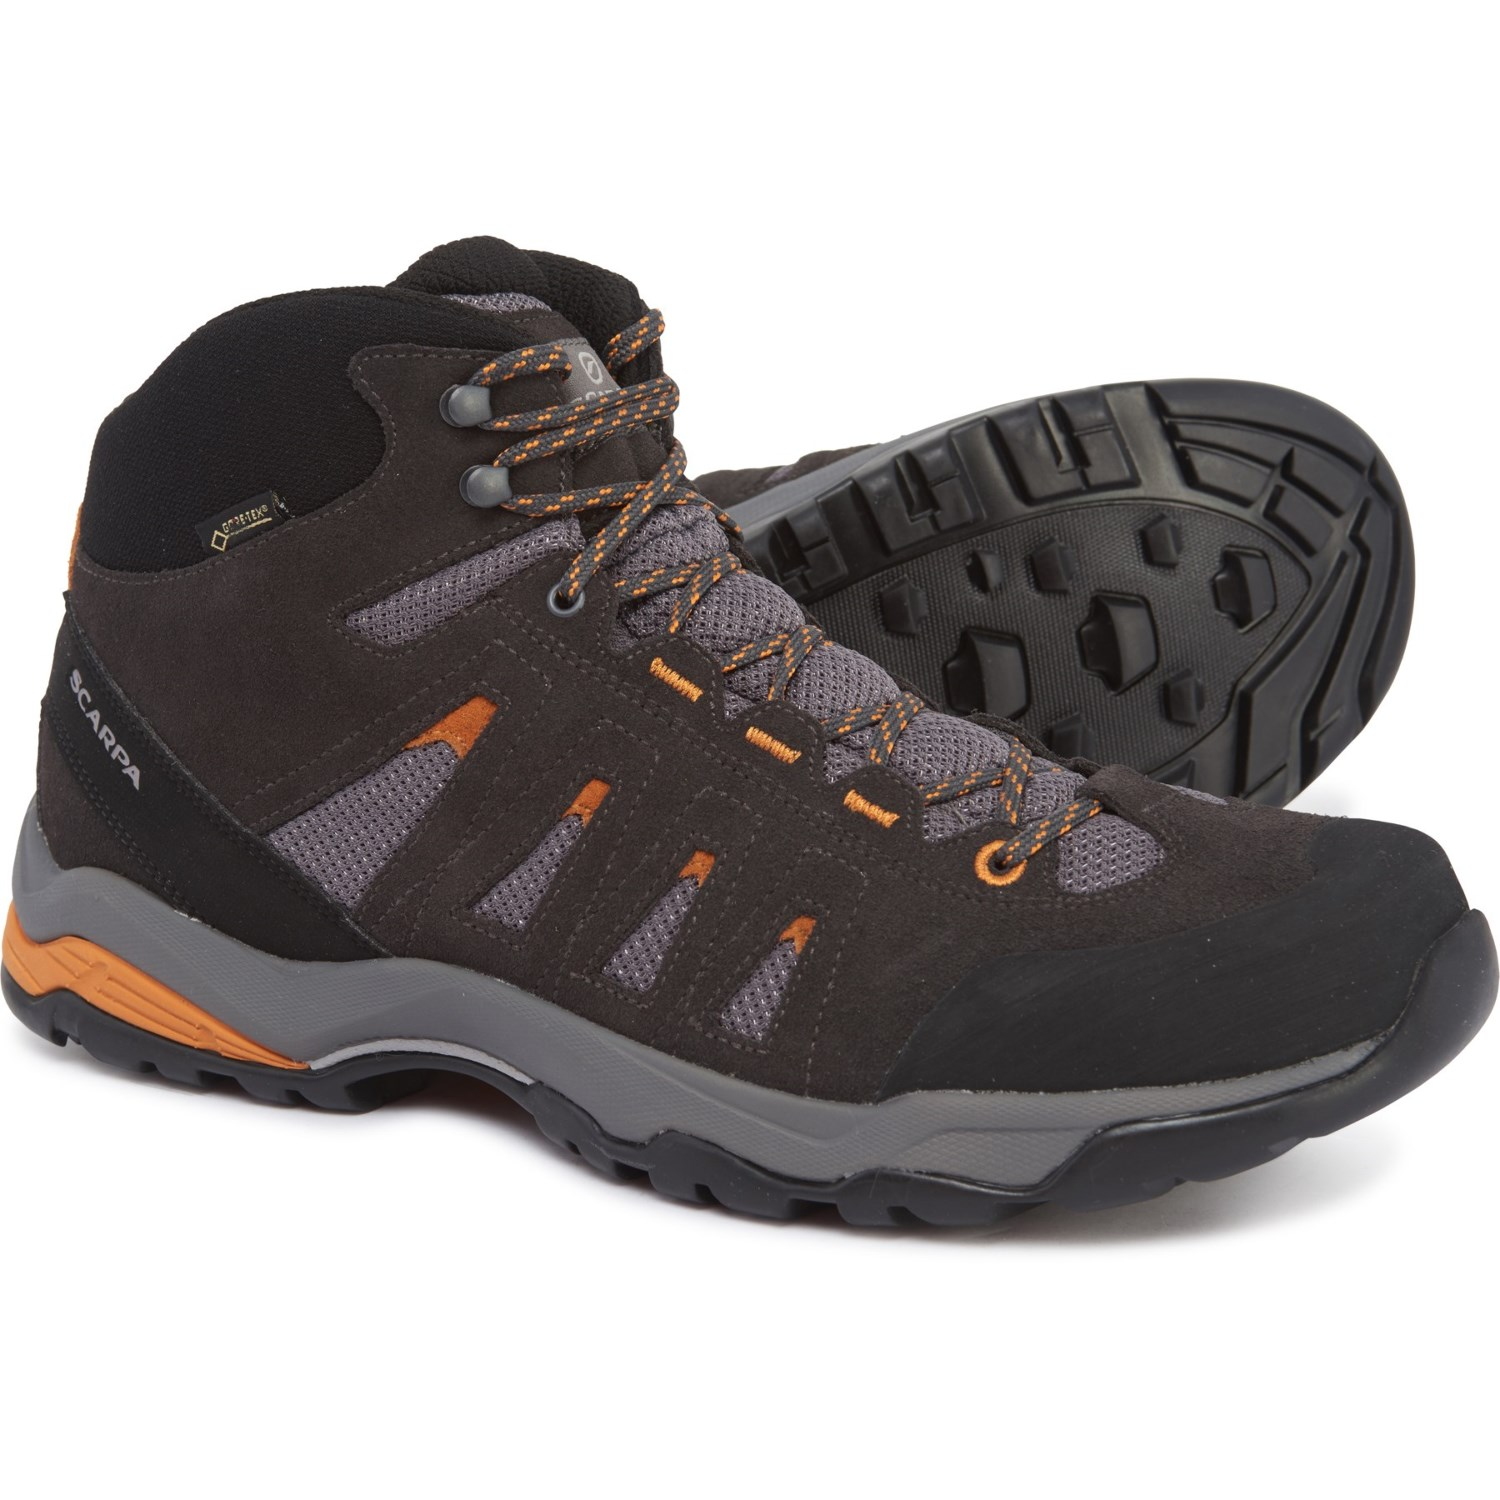 8b56436c634 Scarpa Moraine Mid Gore-Tex® Hiking Boots (For Men) - Save 50%